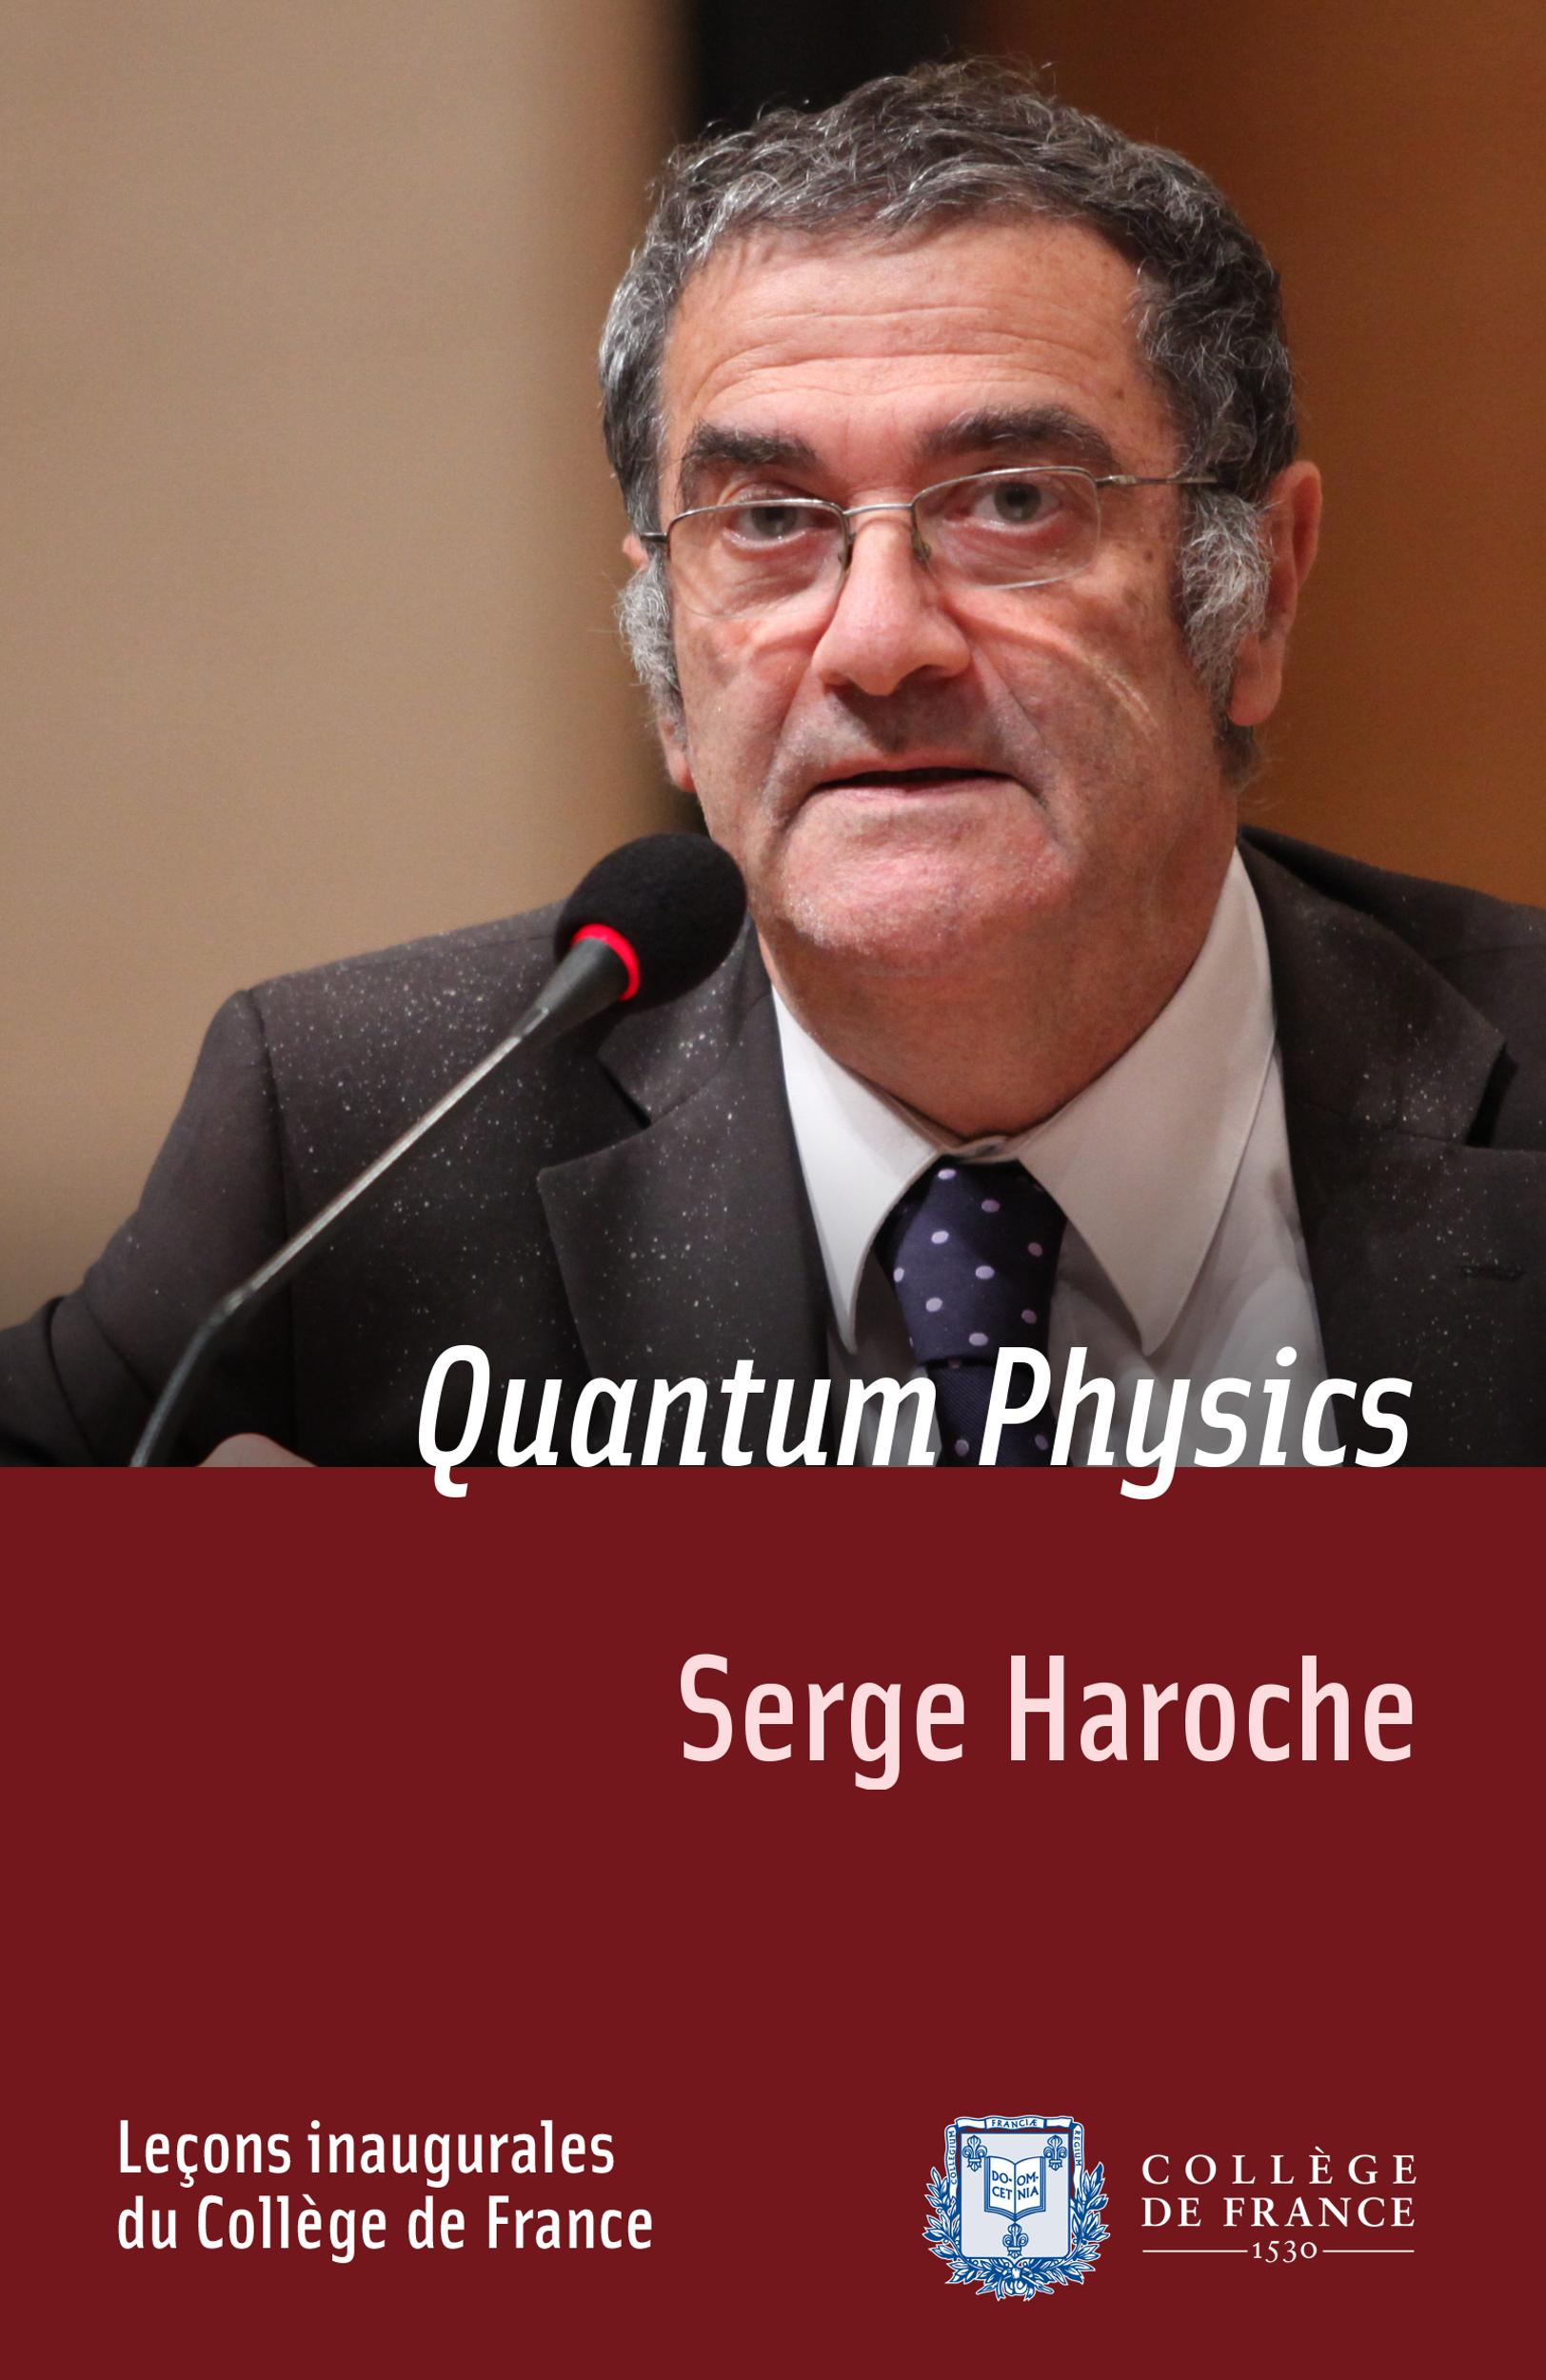 Quantum Physics, INAUGURAL LECTURE DELIVERED ON THURSDAY 13DECEMBER2001